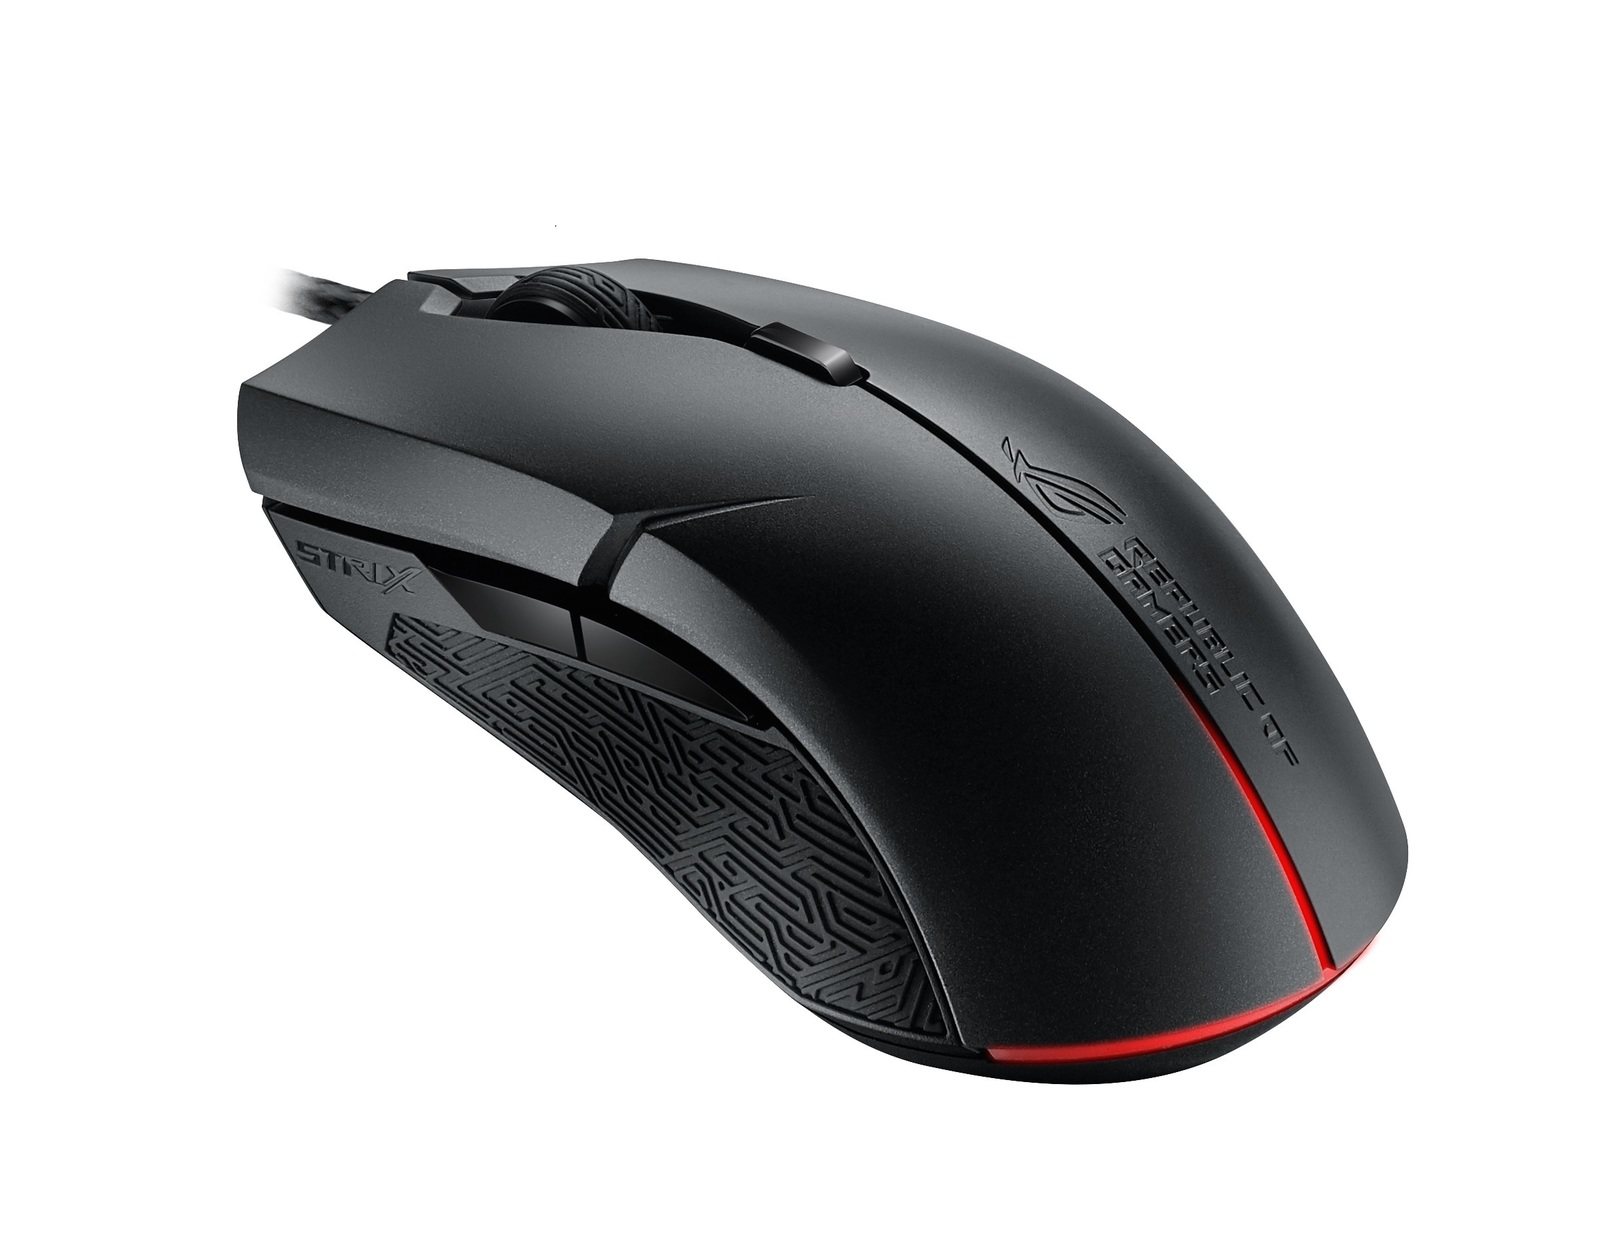 ASUS ROG Strix Evolve Wired Gaming Mouse for PC Games image